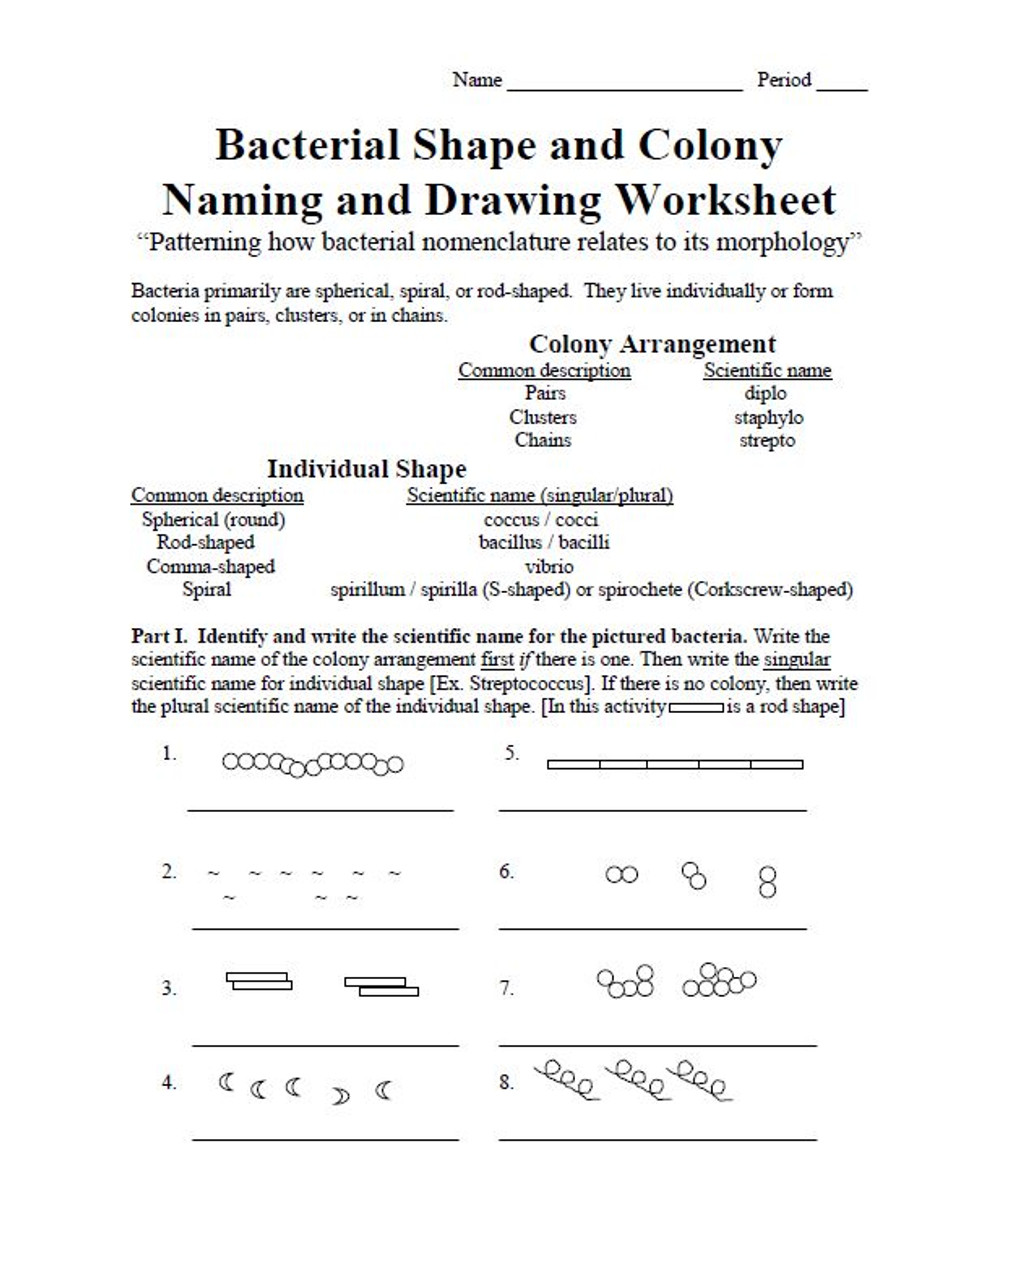 small resolution of Bacterial Shape and Colony Naming and Drawing Worksheet - Amped Up Learning